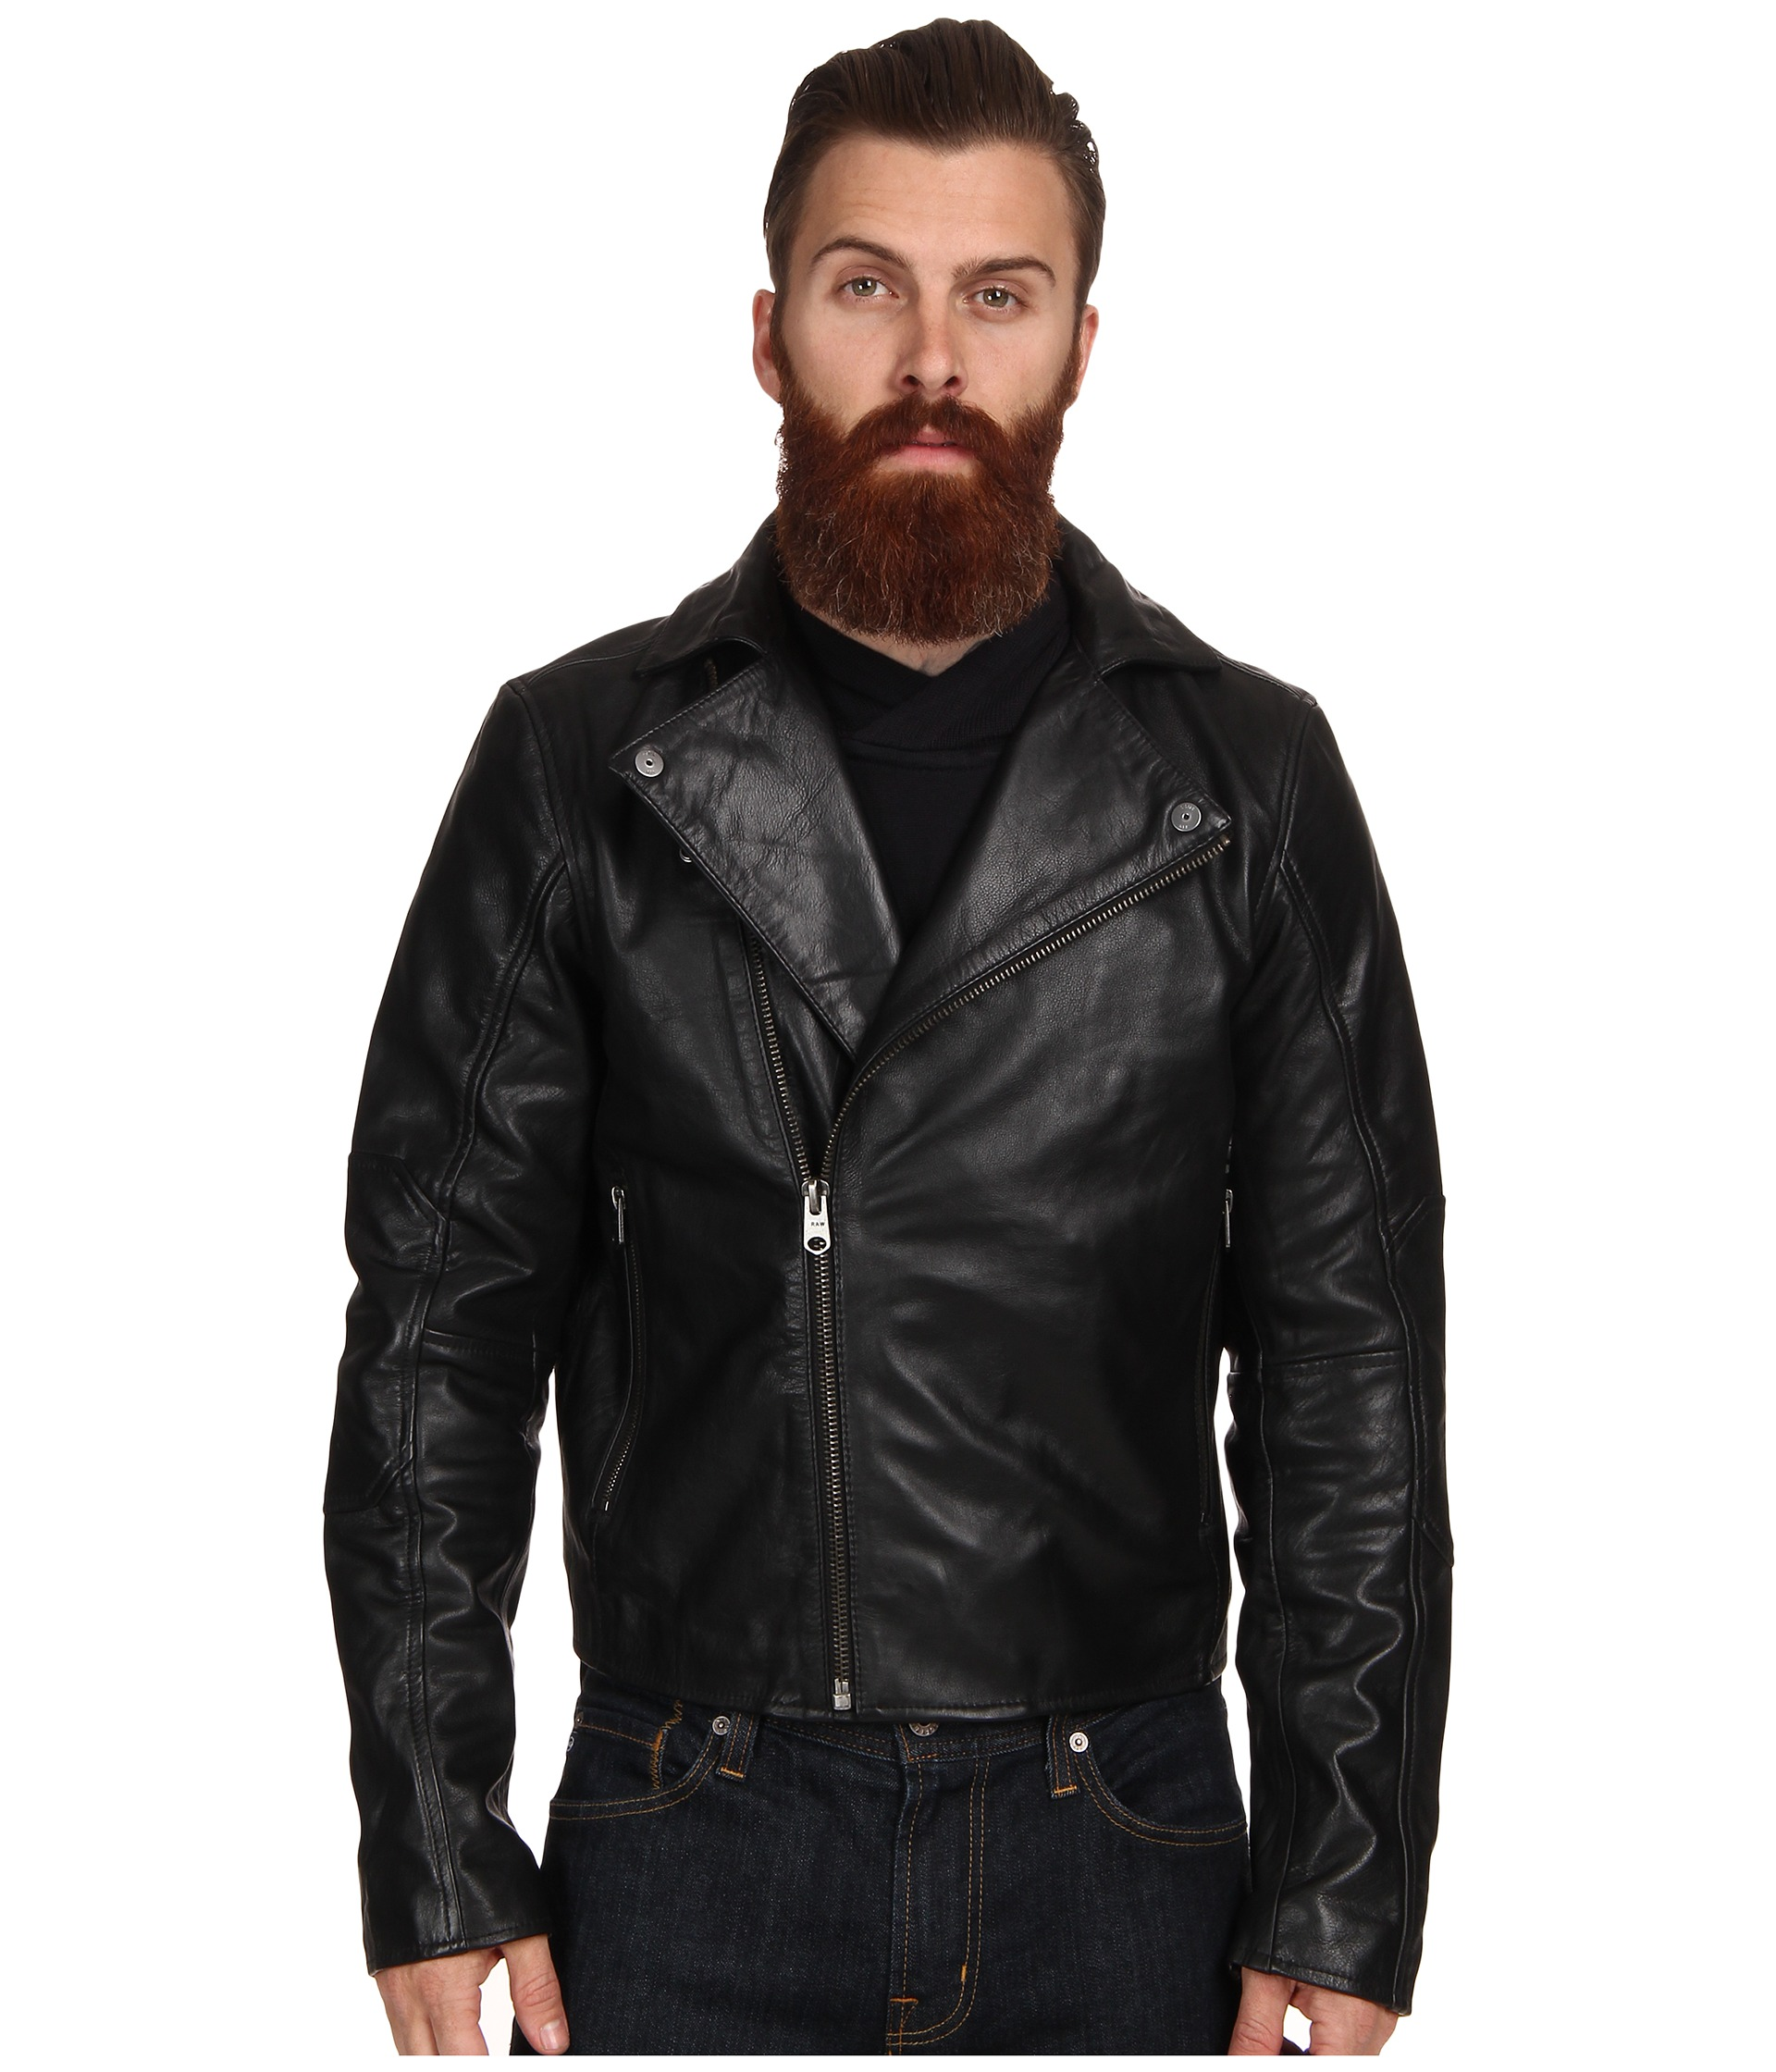 Black Leather Jackets For Boys Perfecto leather jacket